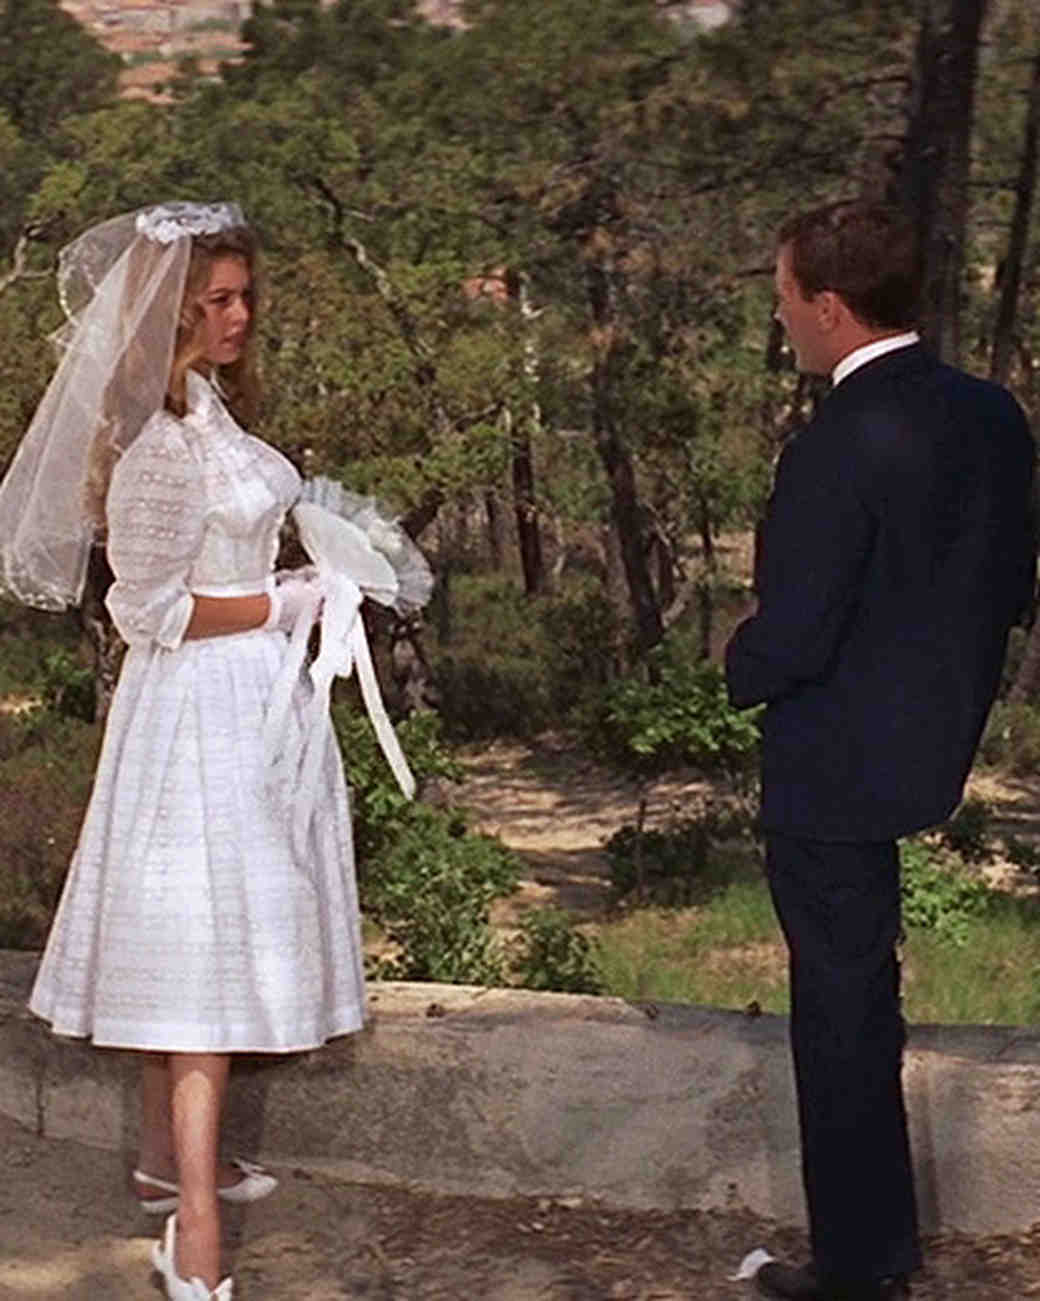 movie-wedding-dresses-and-god-created-woman-brigitte-bardot-shirtdress-0516.jpg